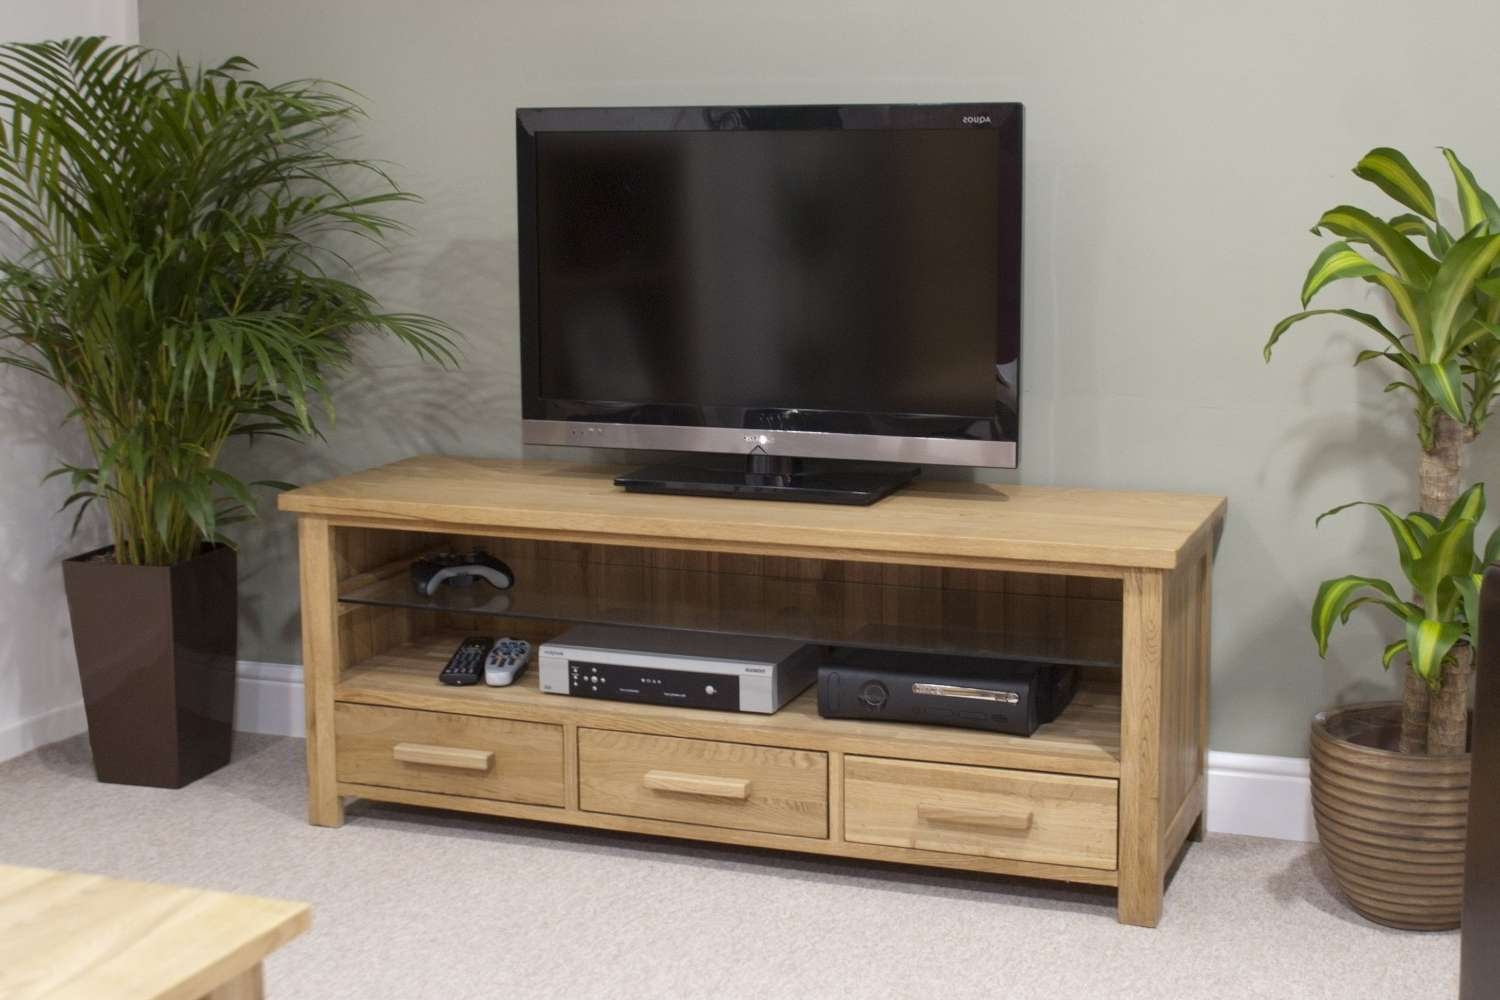 Eton Solid Oak Living Room Furniture Widescreen Tv Cabinet Stand Throughout Oak Tv Stands Furniture (View 10 of 15)